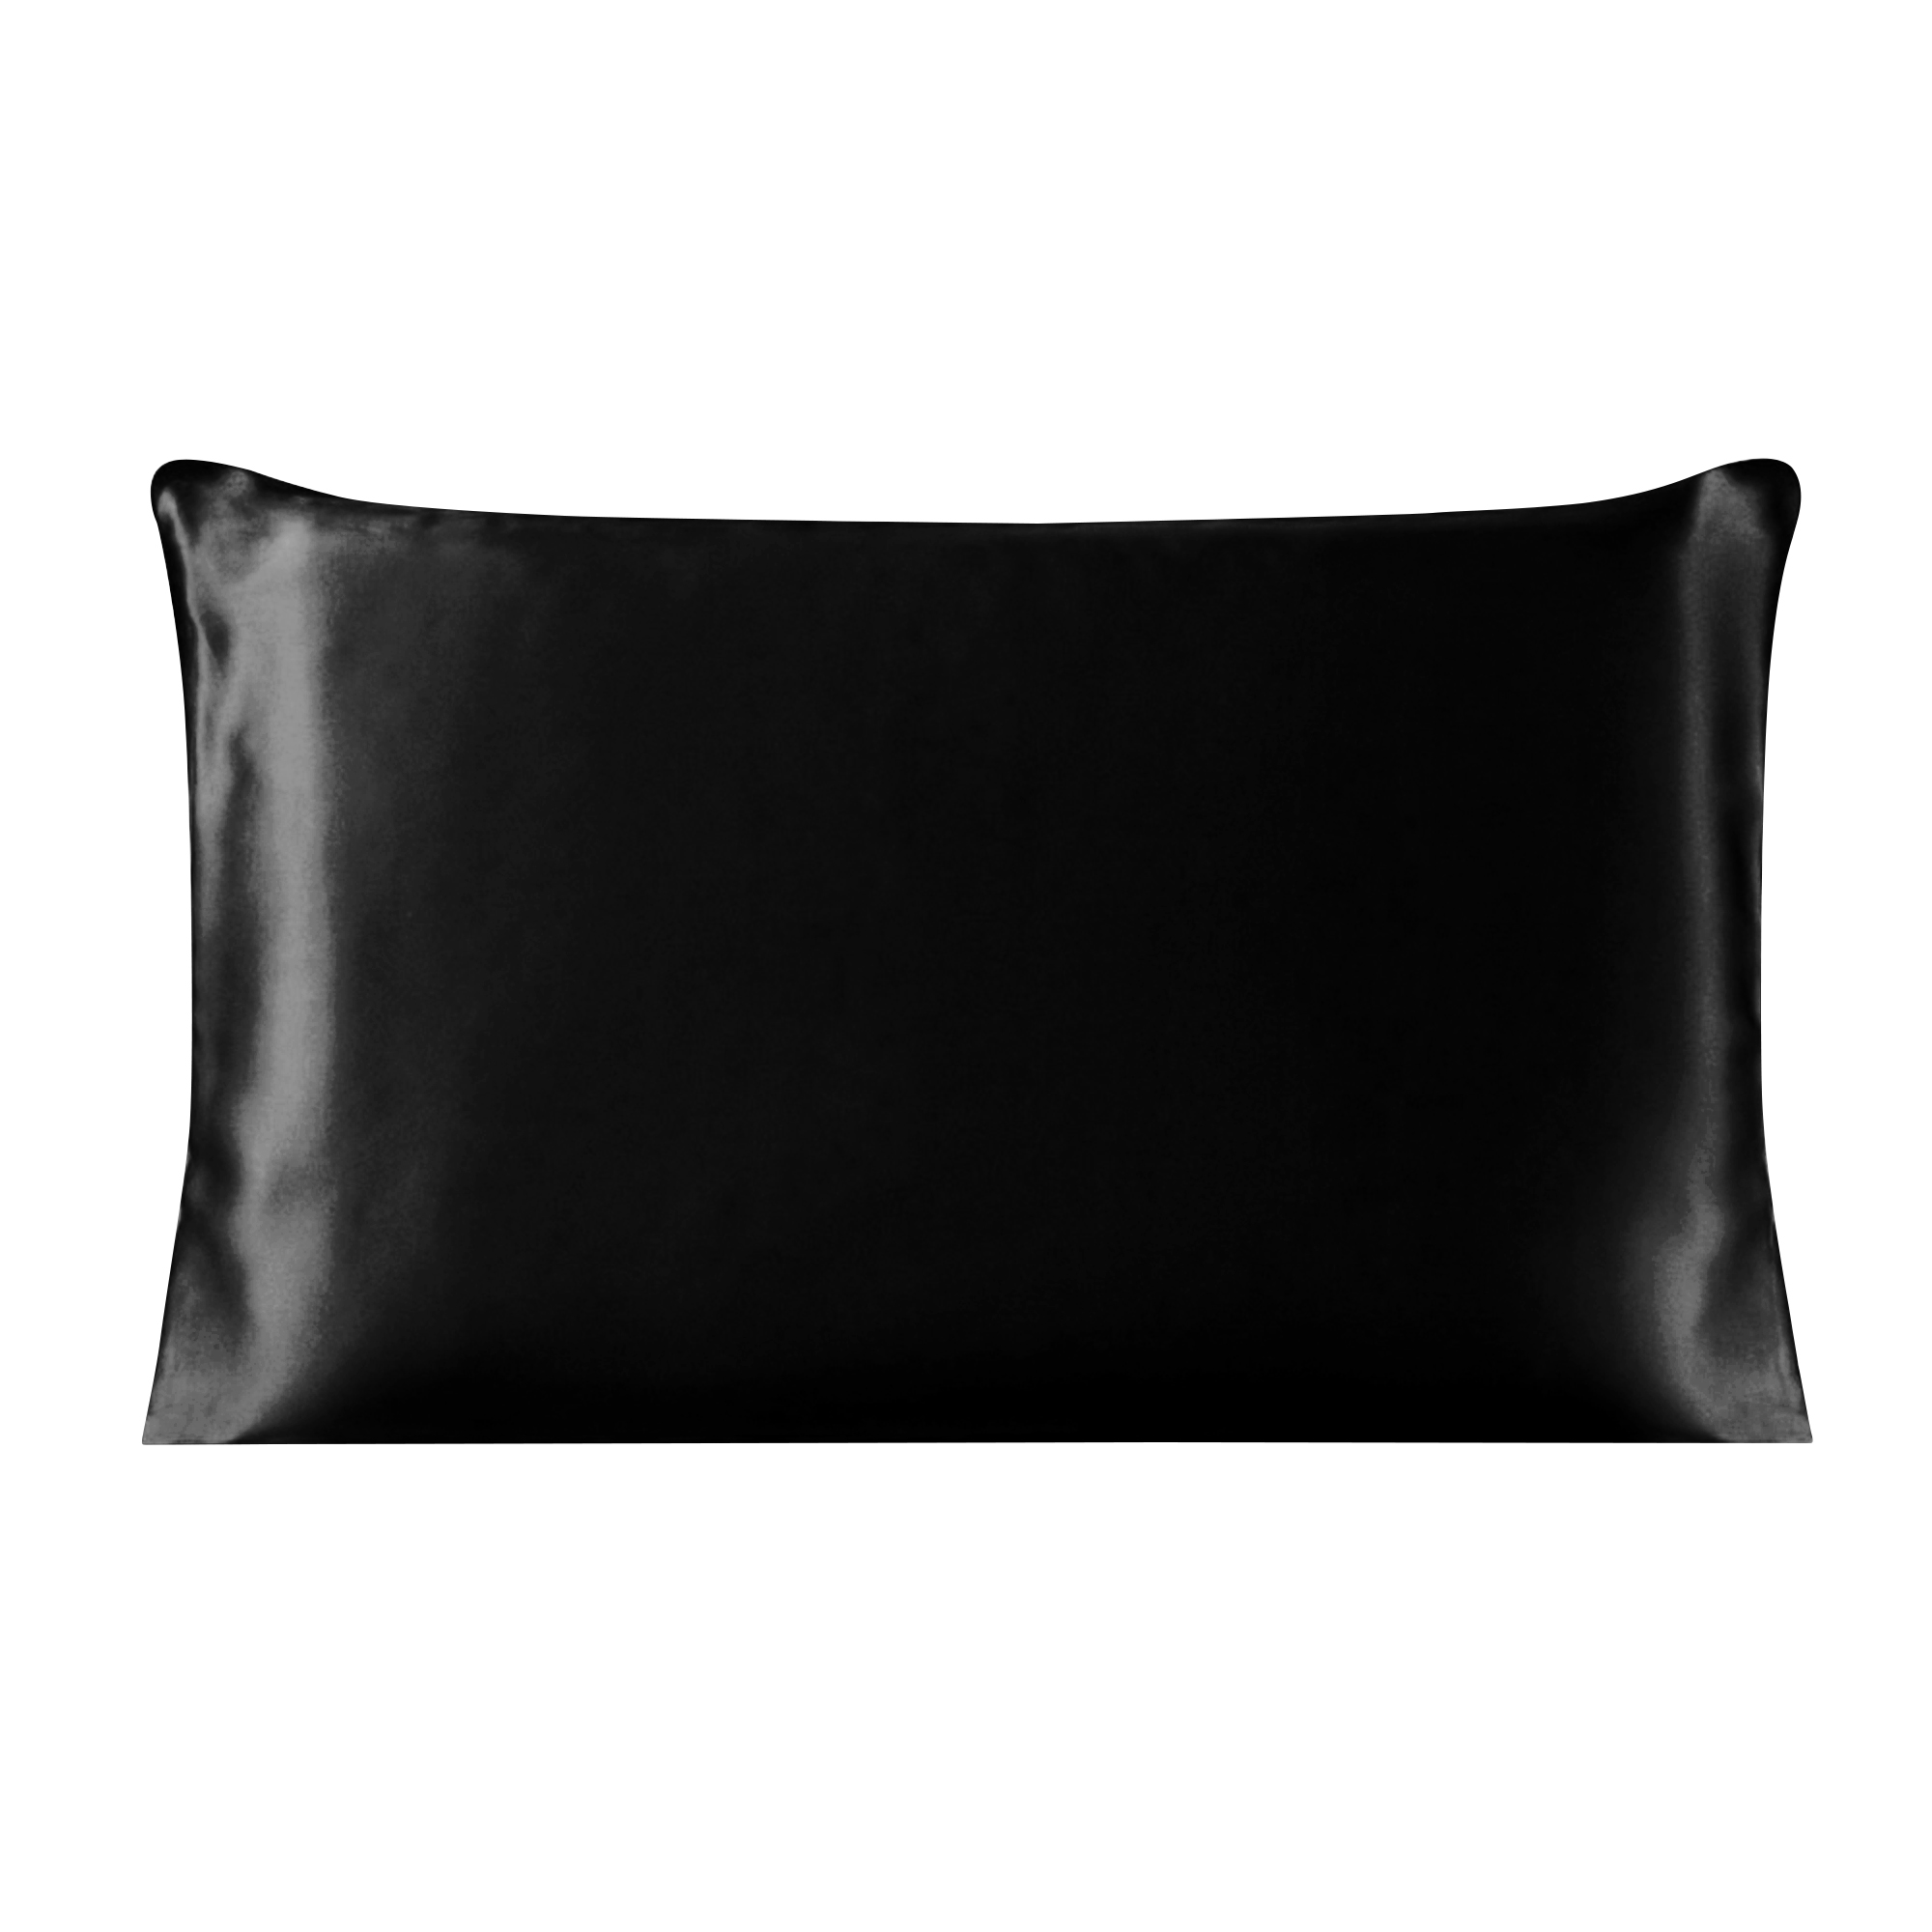 100% Mulberry Silk Fabric Pillow Case Cover Pillowcase Black King Size